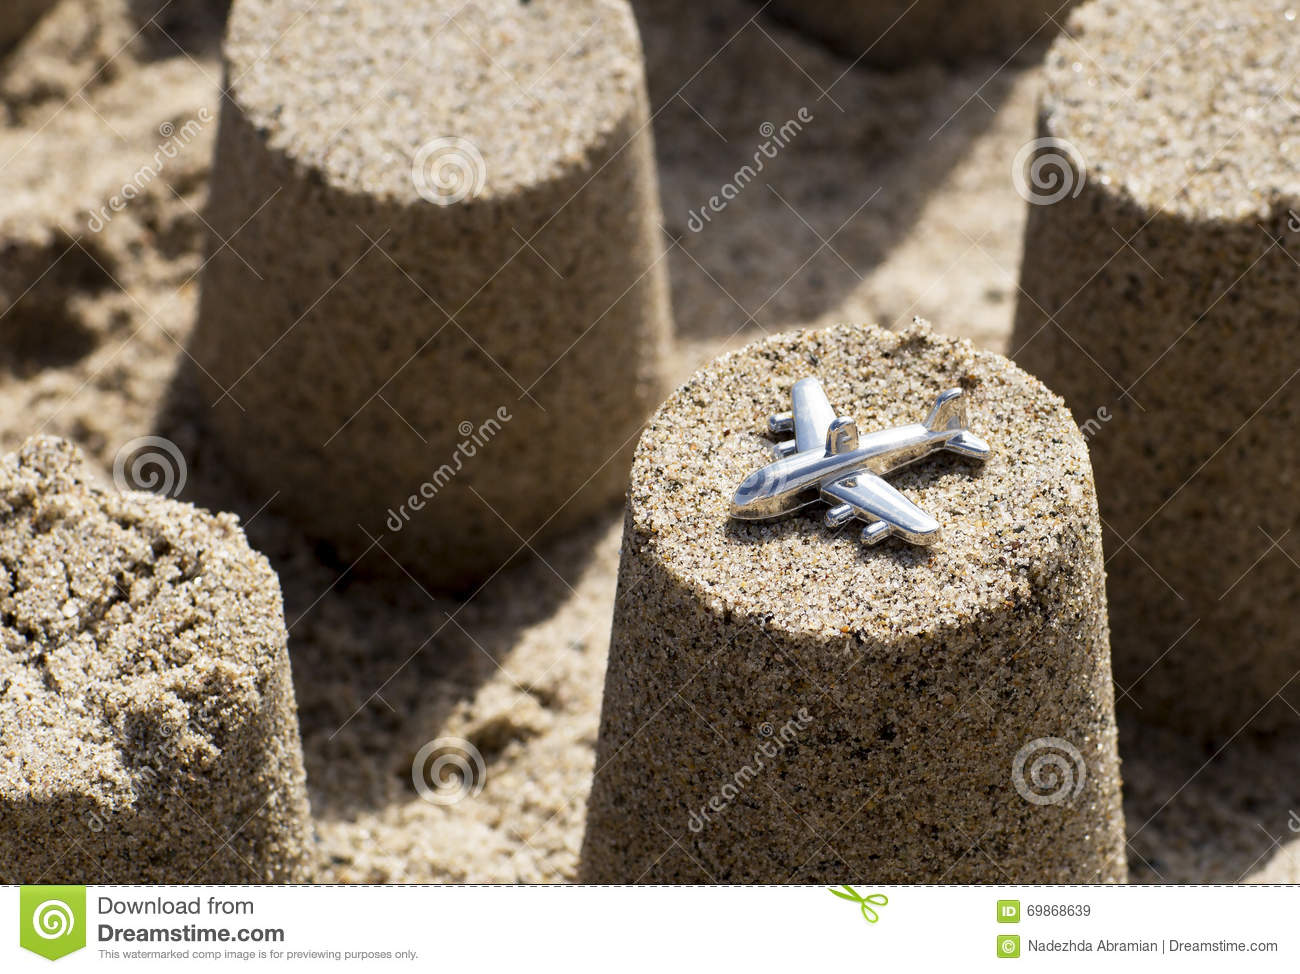 eehnie+russian AC vs all others Plane-cone-figure-made-beach-sand-figures-light-shadow-69868639